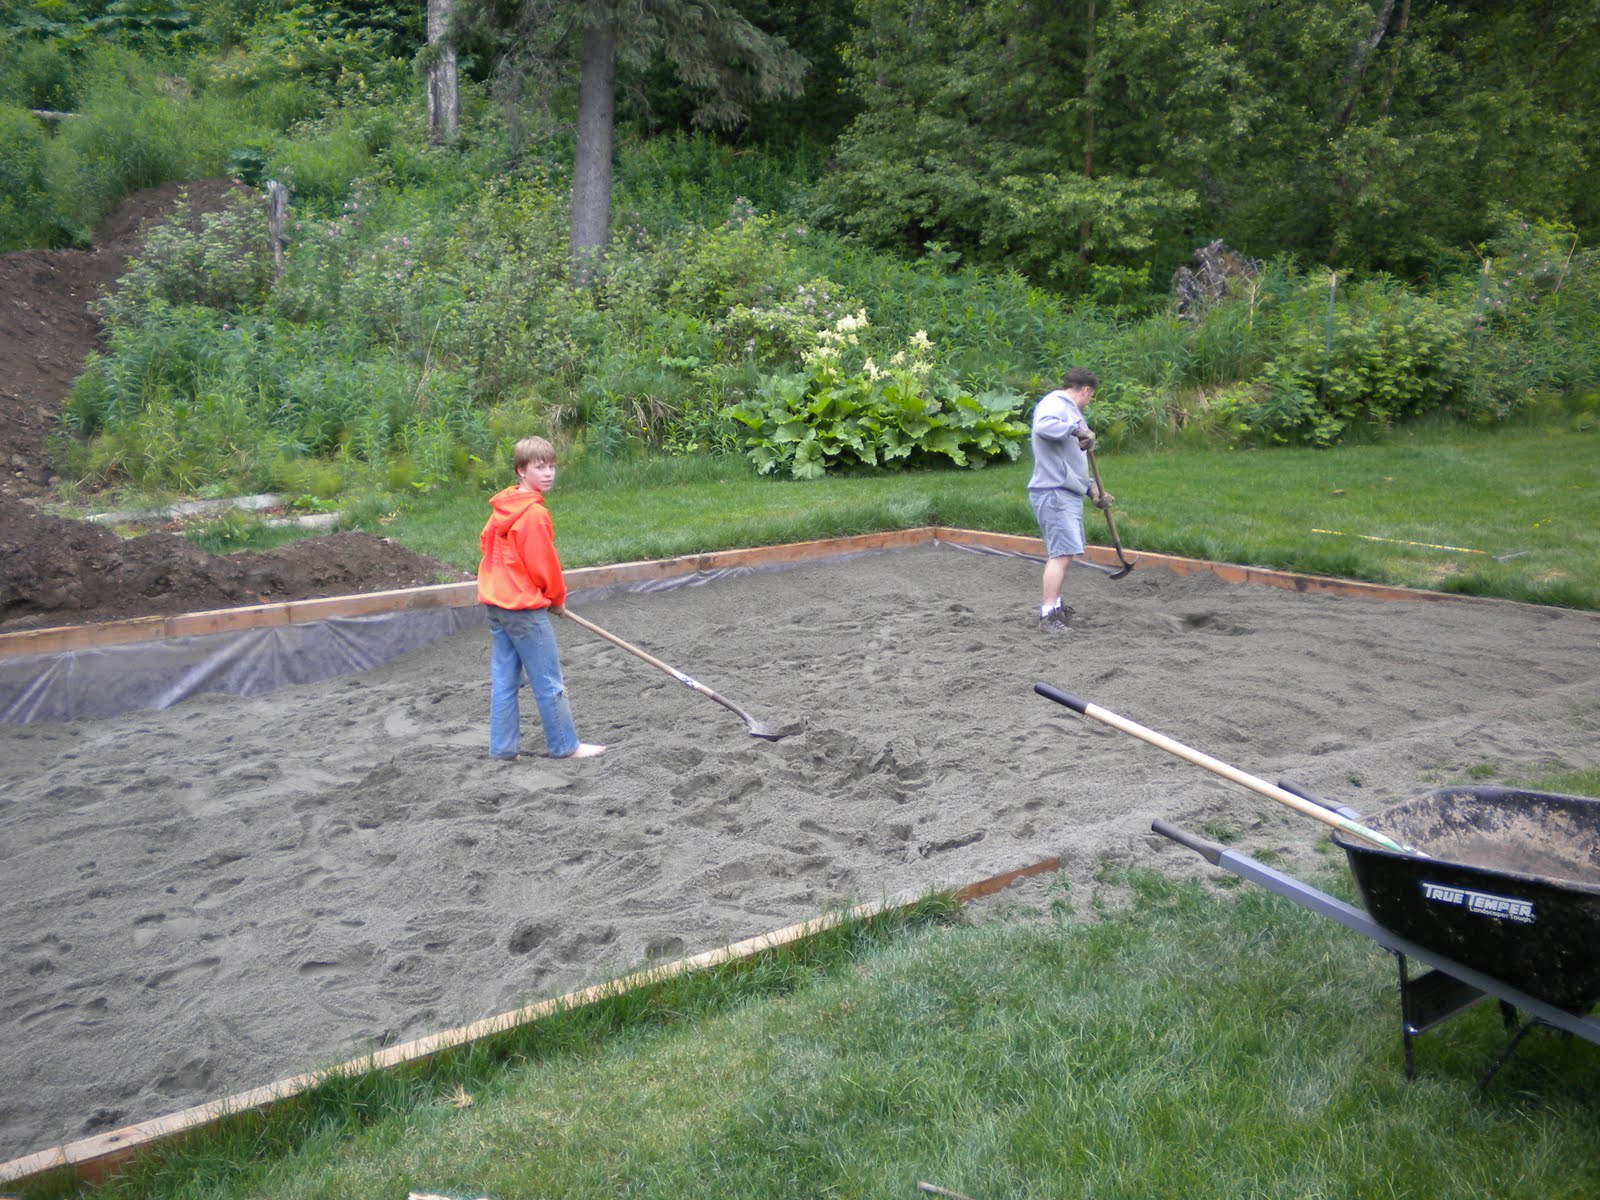 Backyard Sand Volleyball Court : The Quest for the Backyard Sand Volleyball Court The Sand Has Arrived